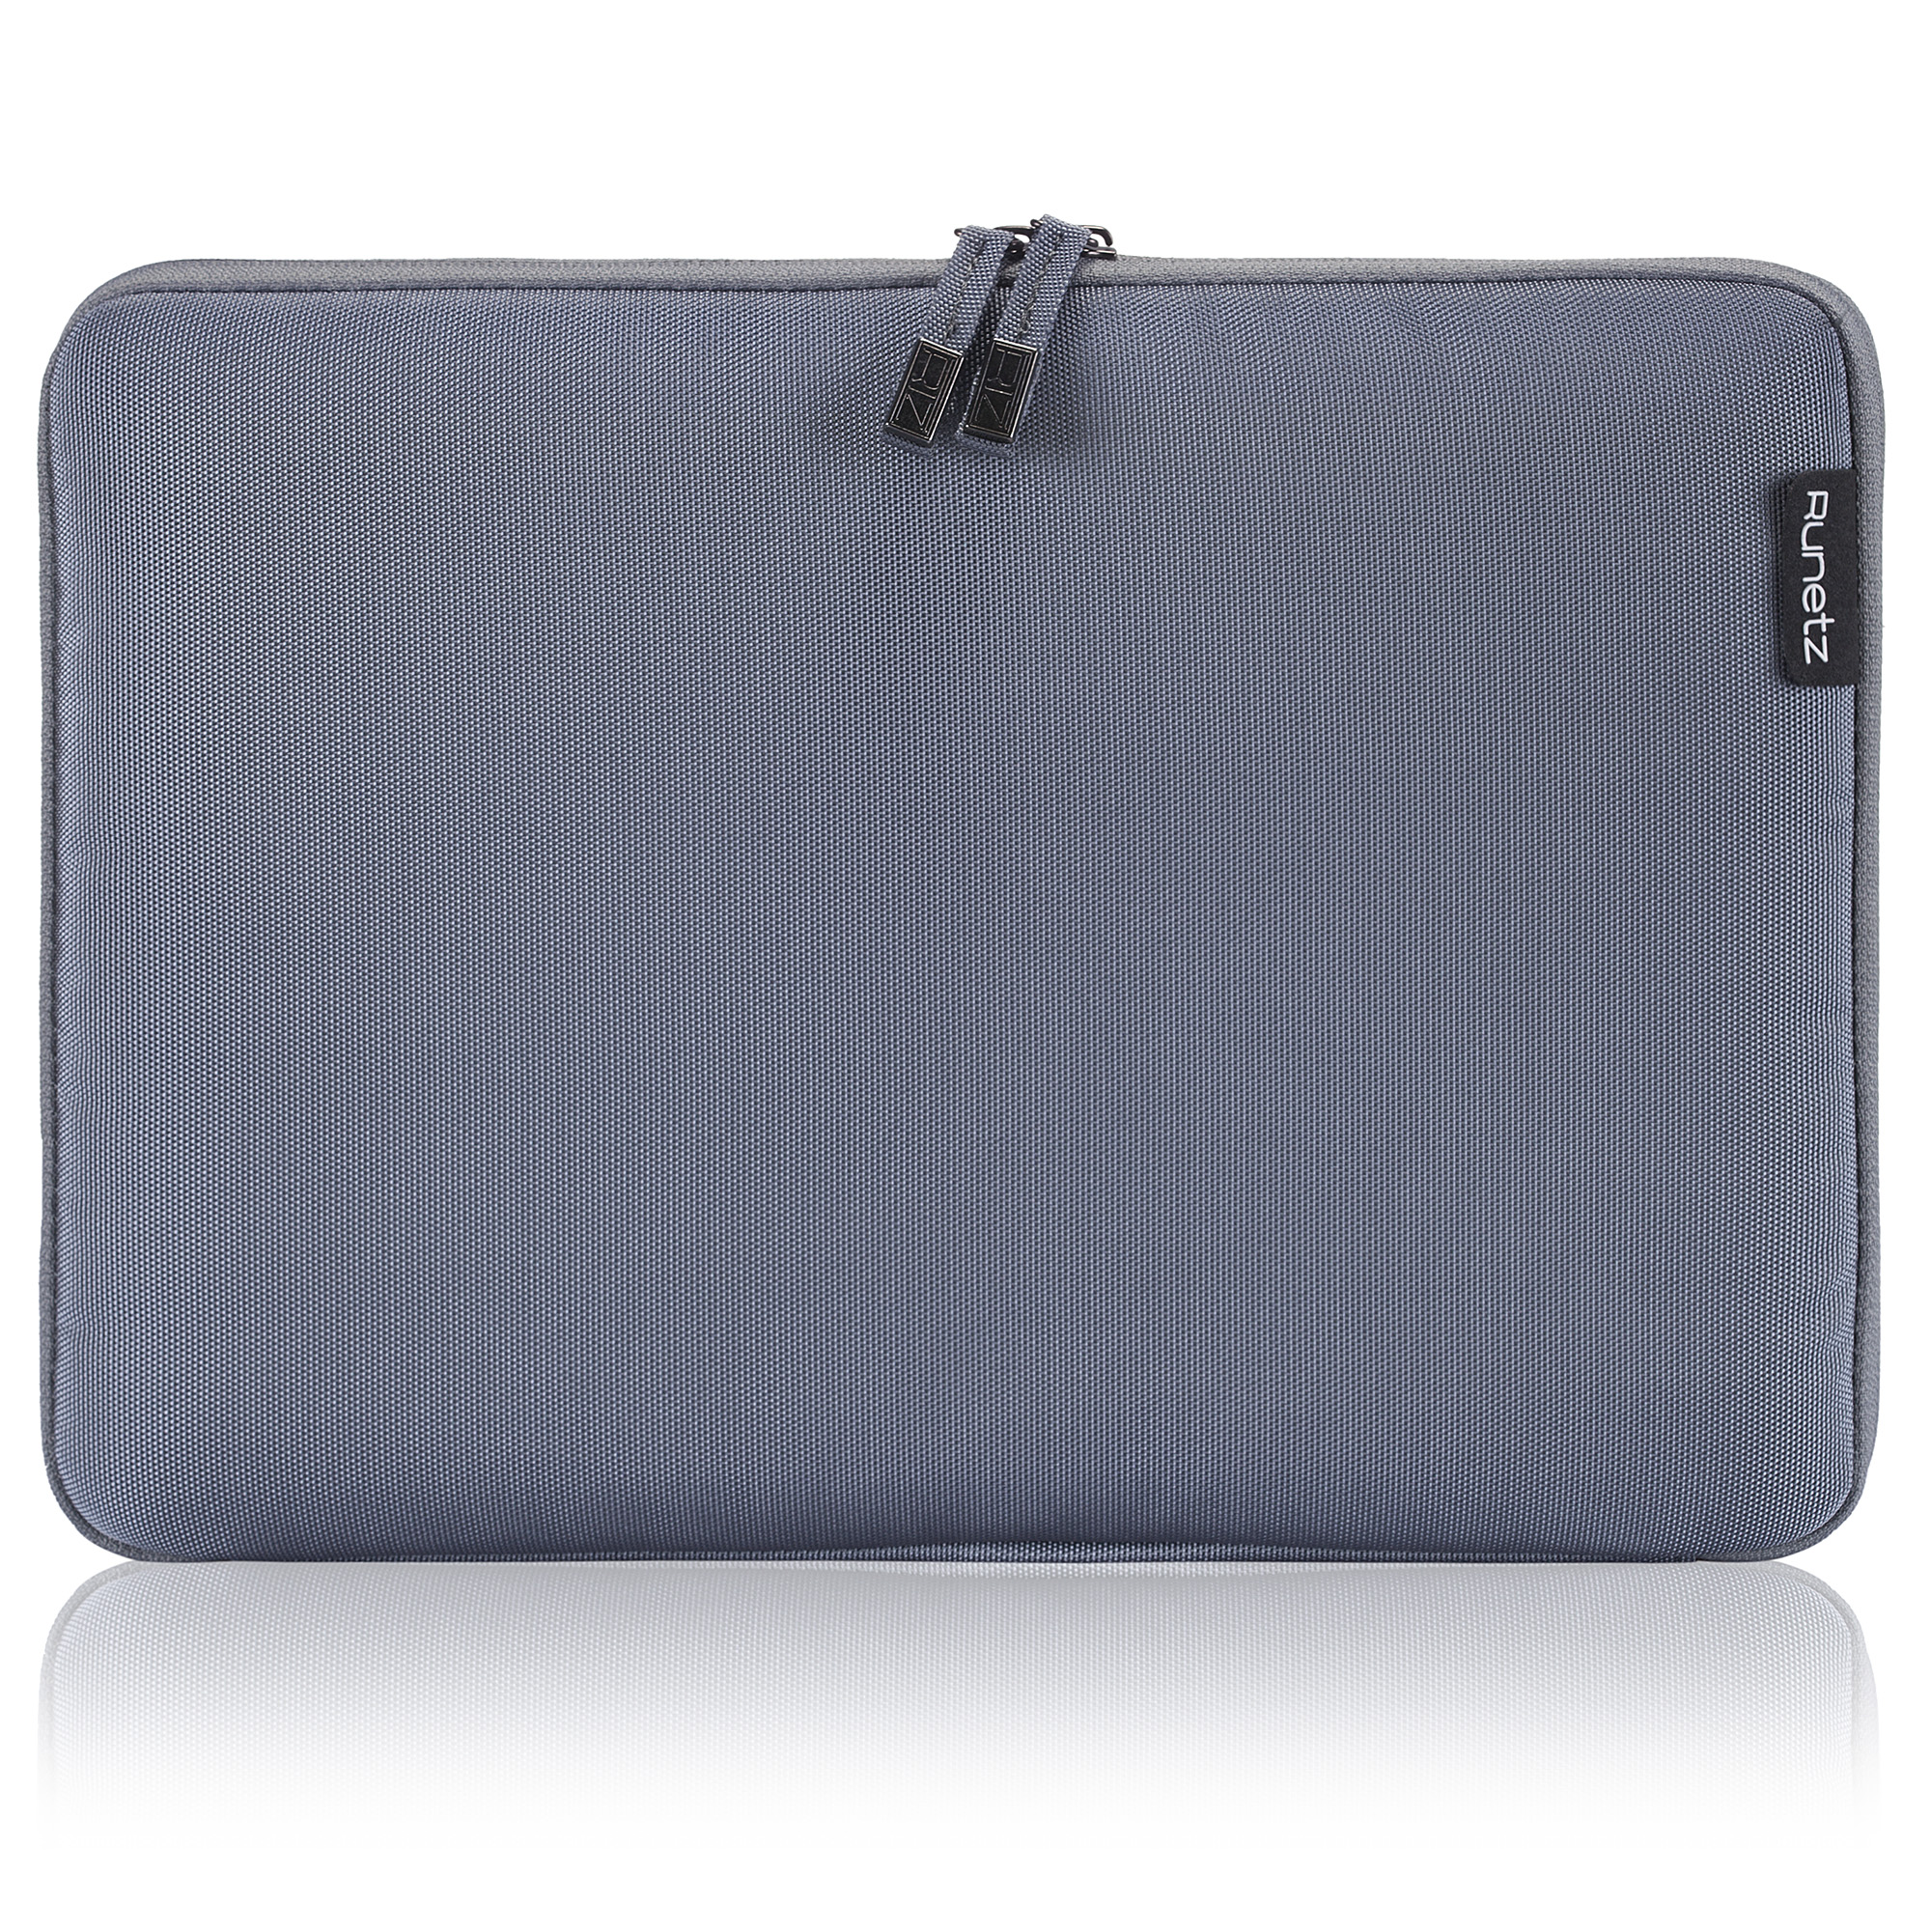 Soft Sleeve For Macbook 11 12 13 15 Inch Retina Pro Air